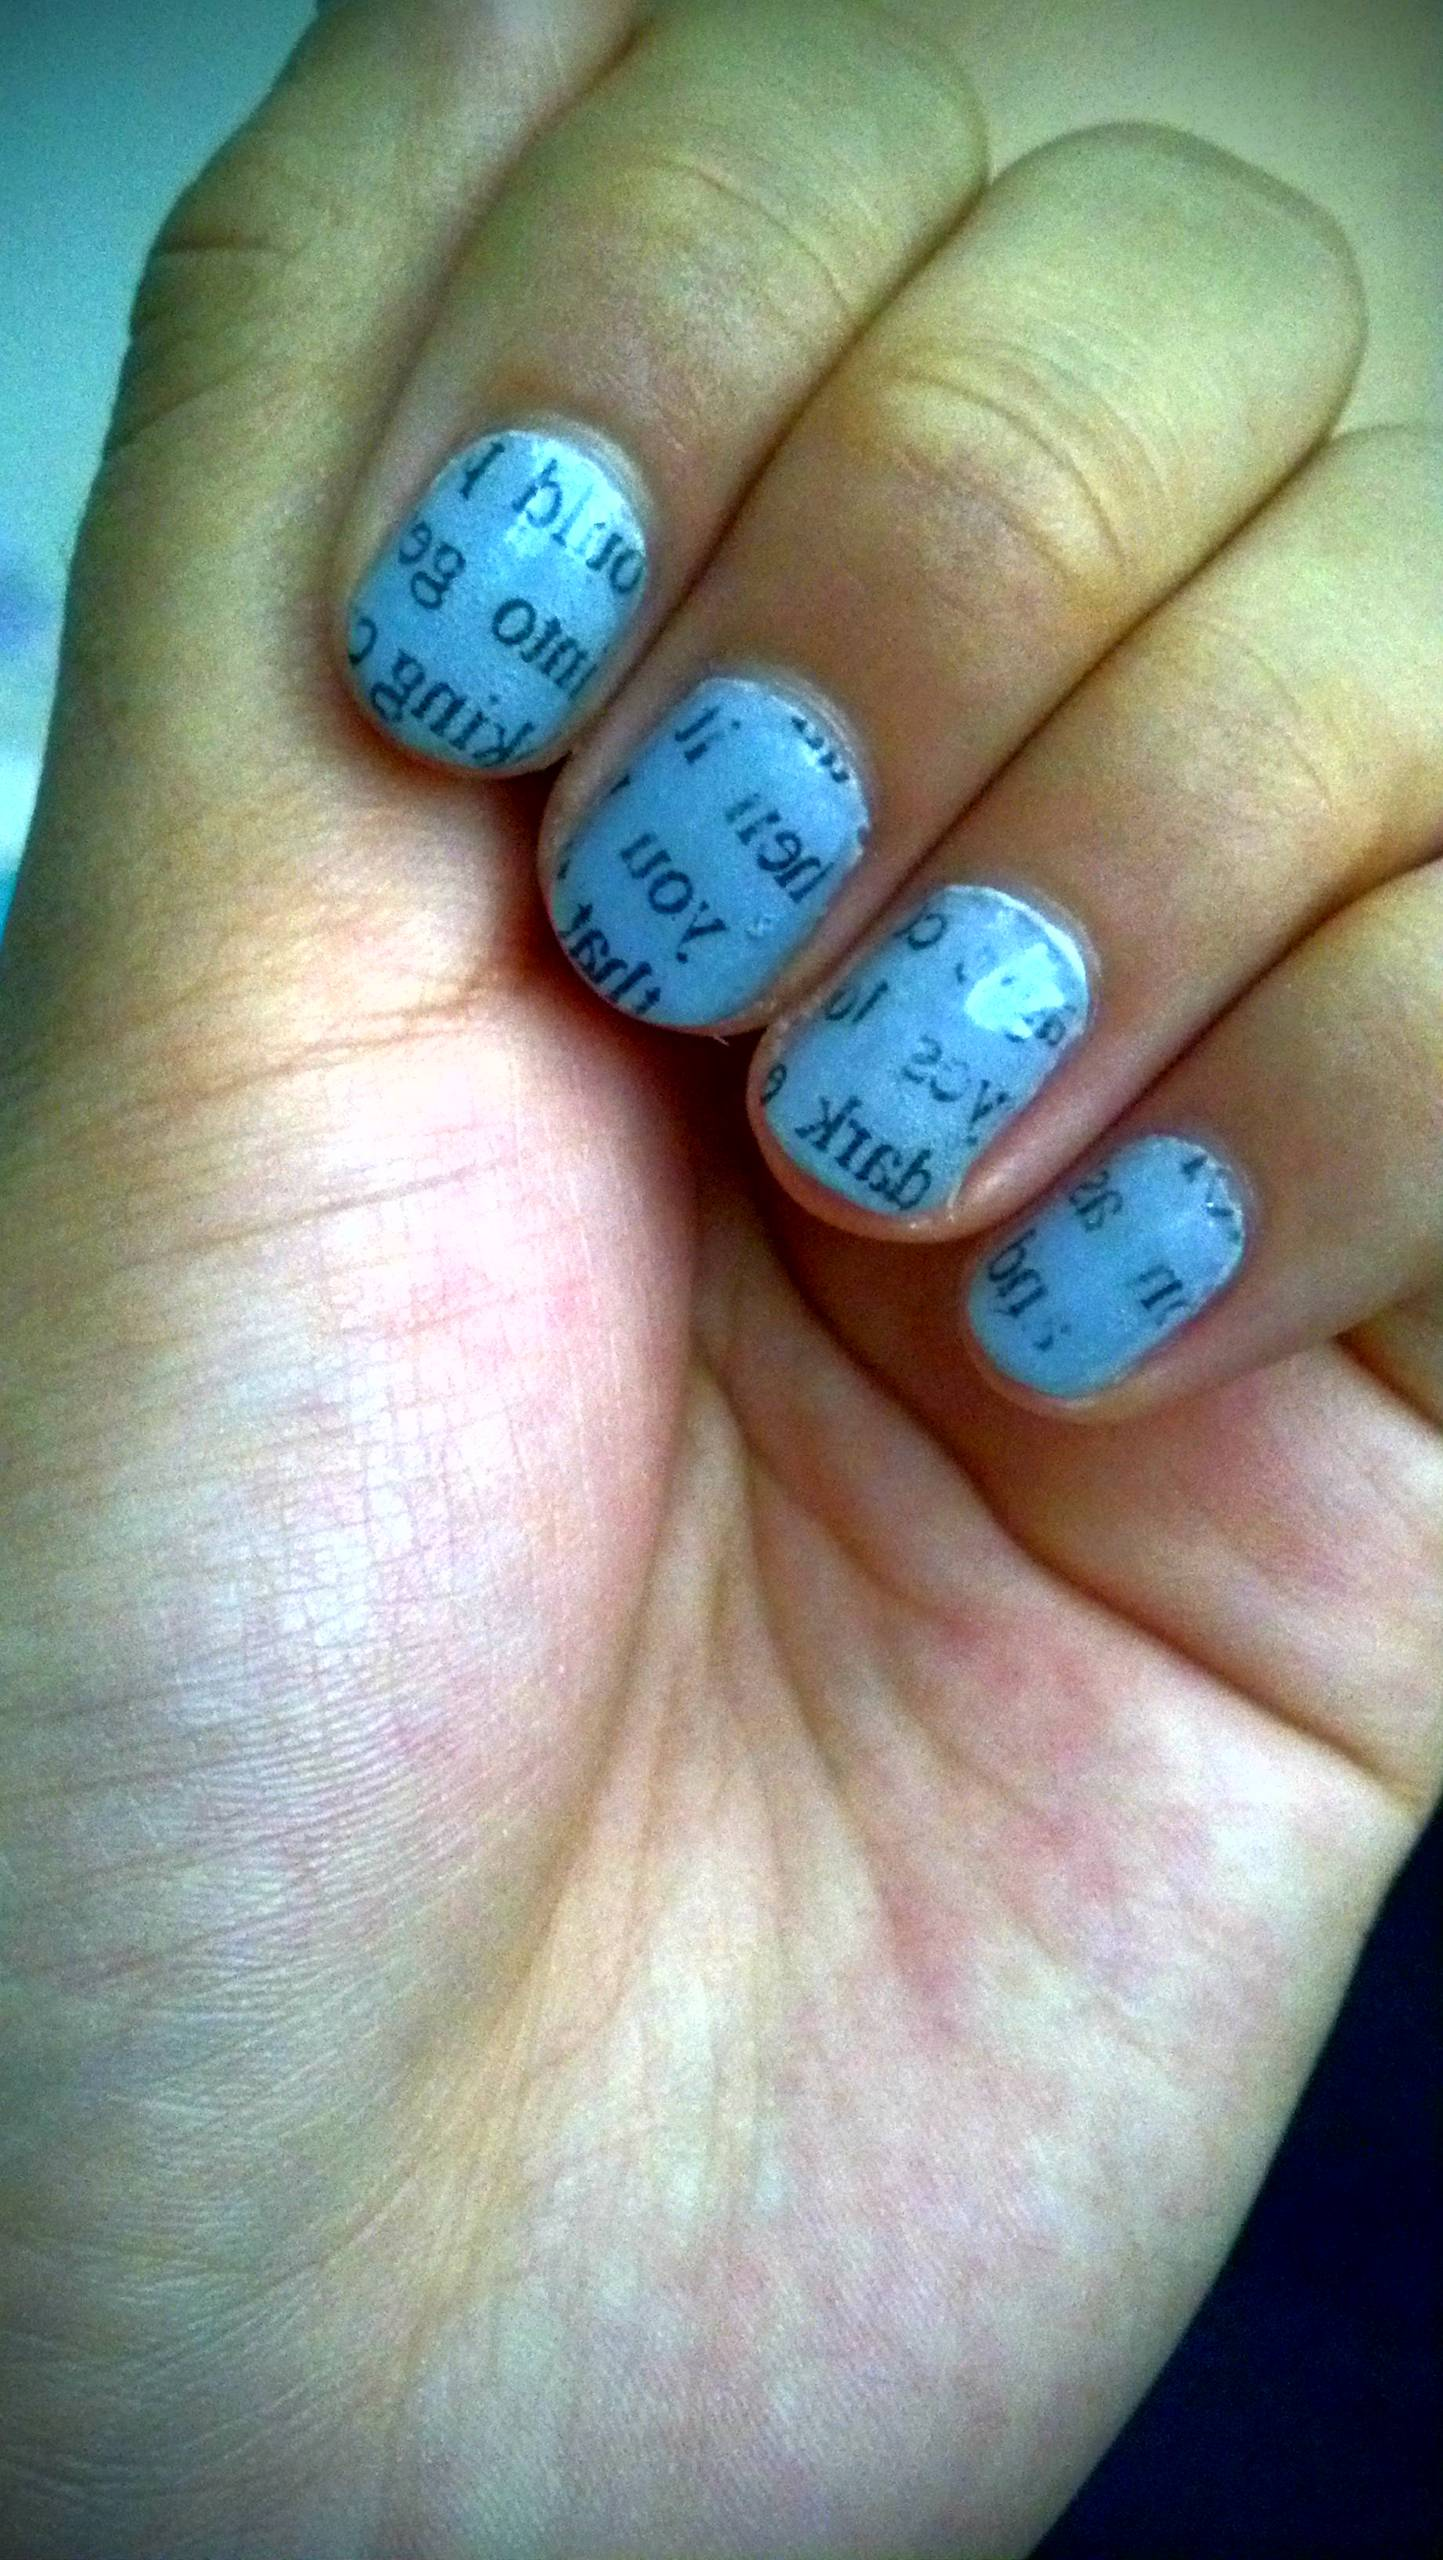 Newspaper Nails Nail Polish Photo 31646913 Fanpop